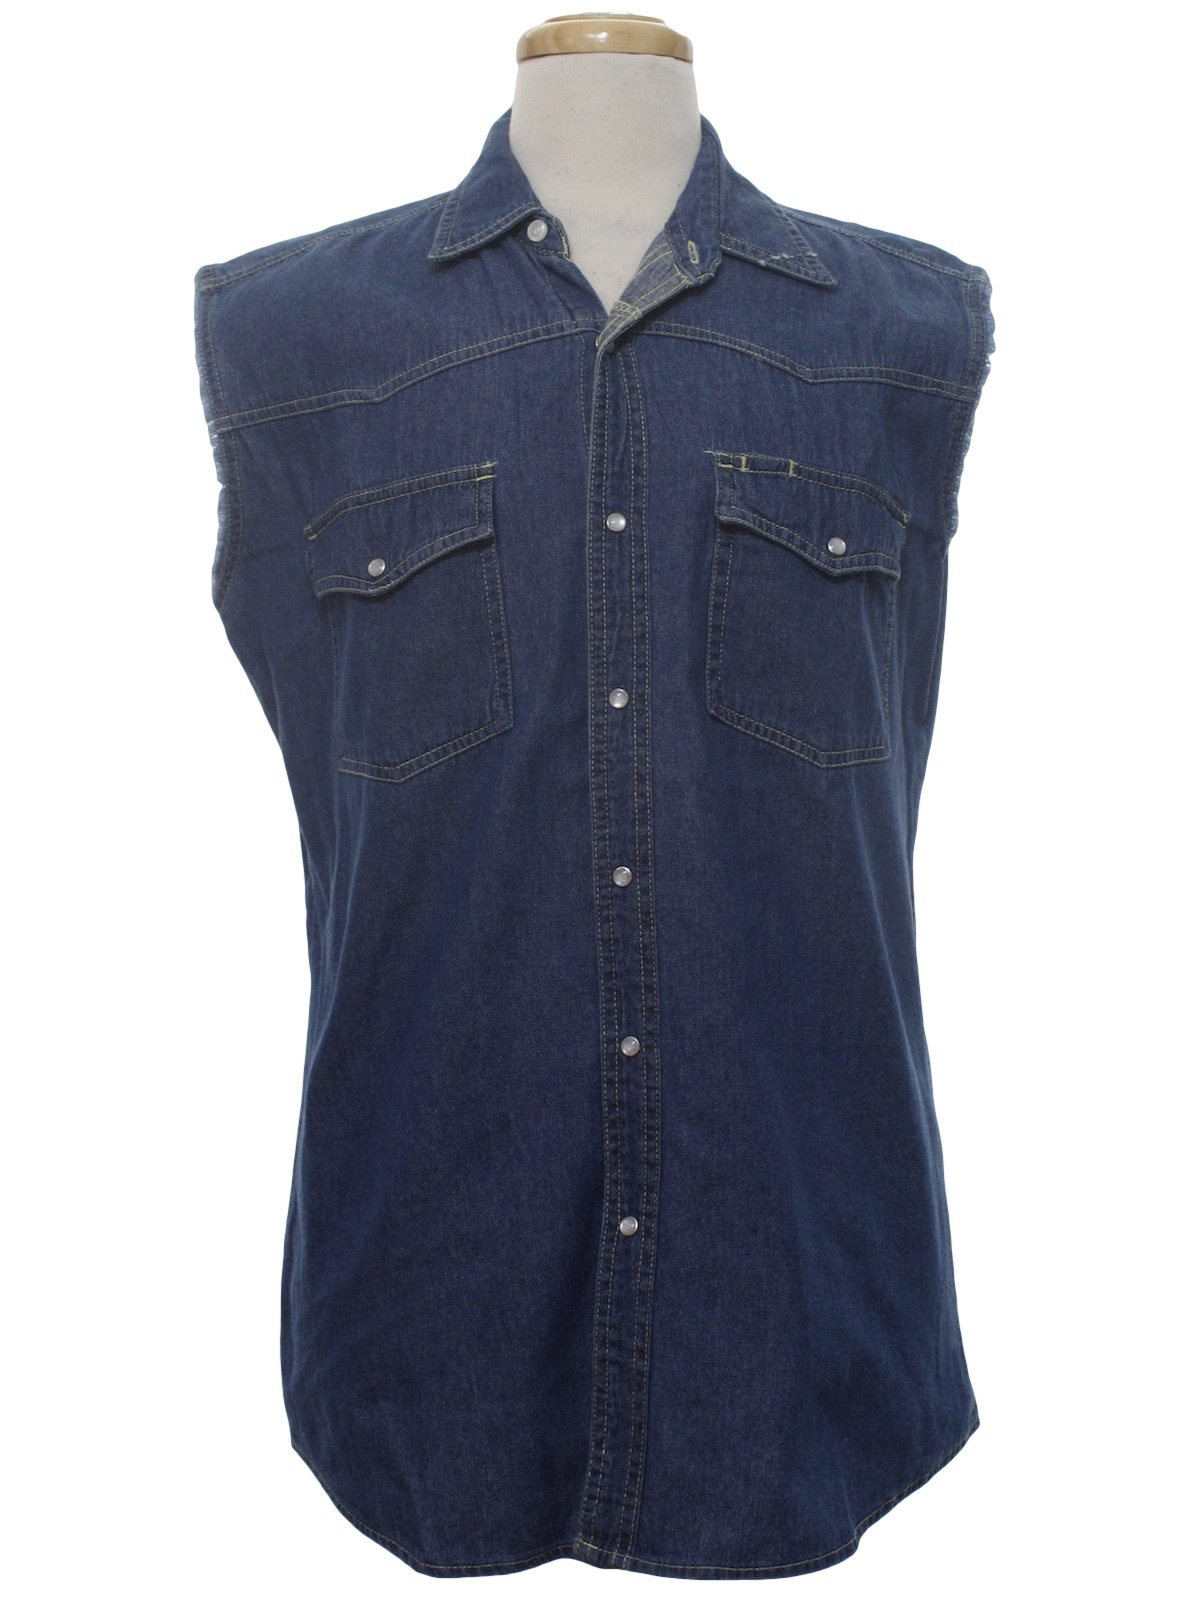 Womens Sleeveless Shirts With Collar